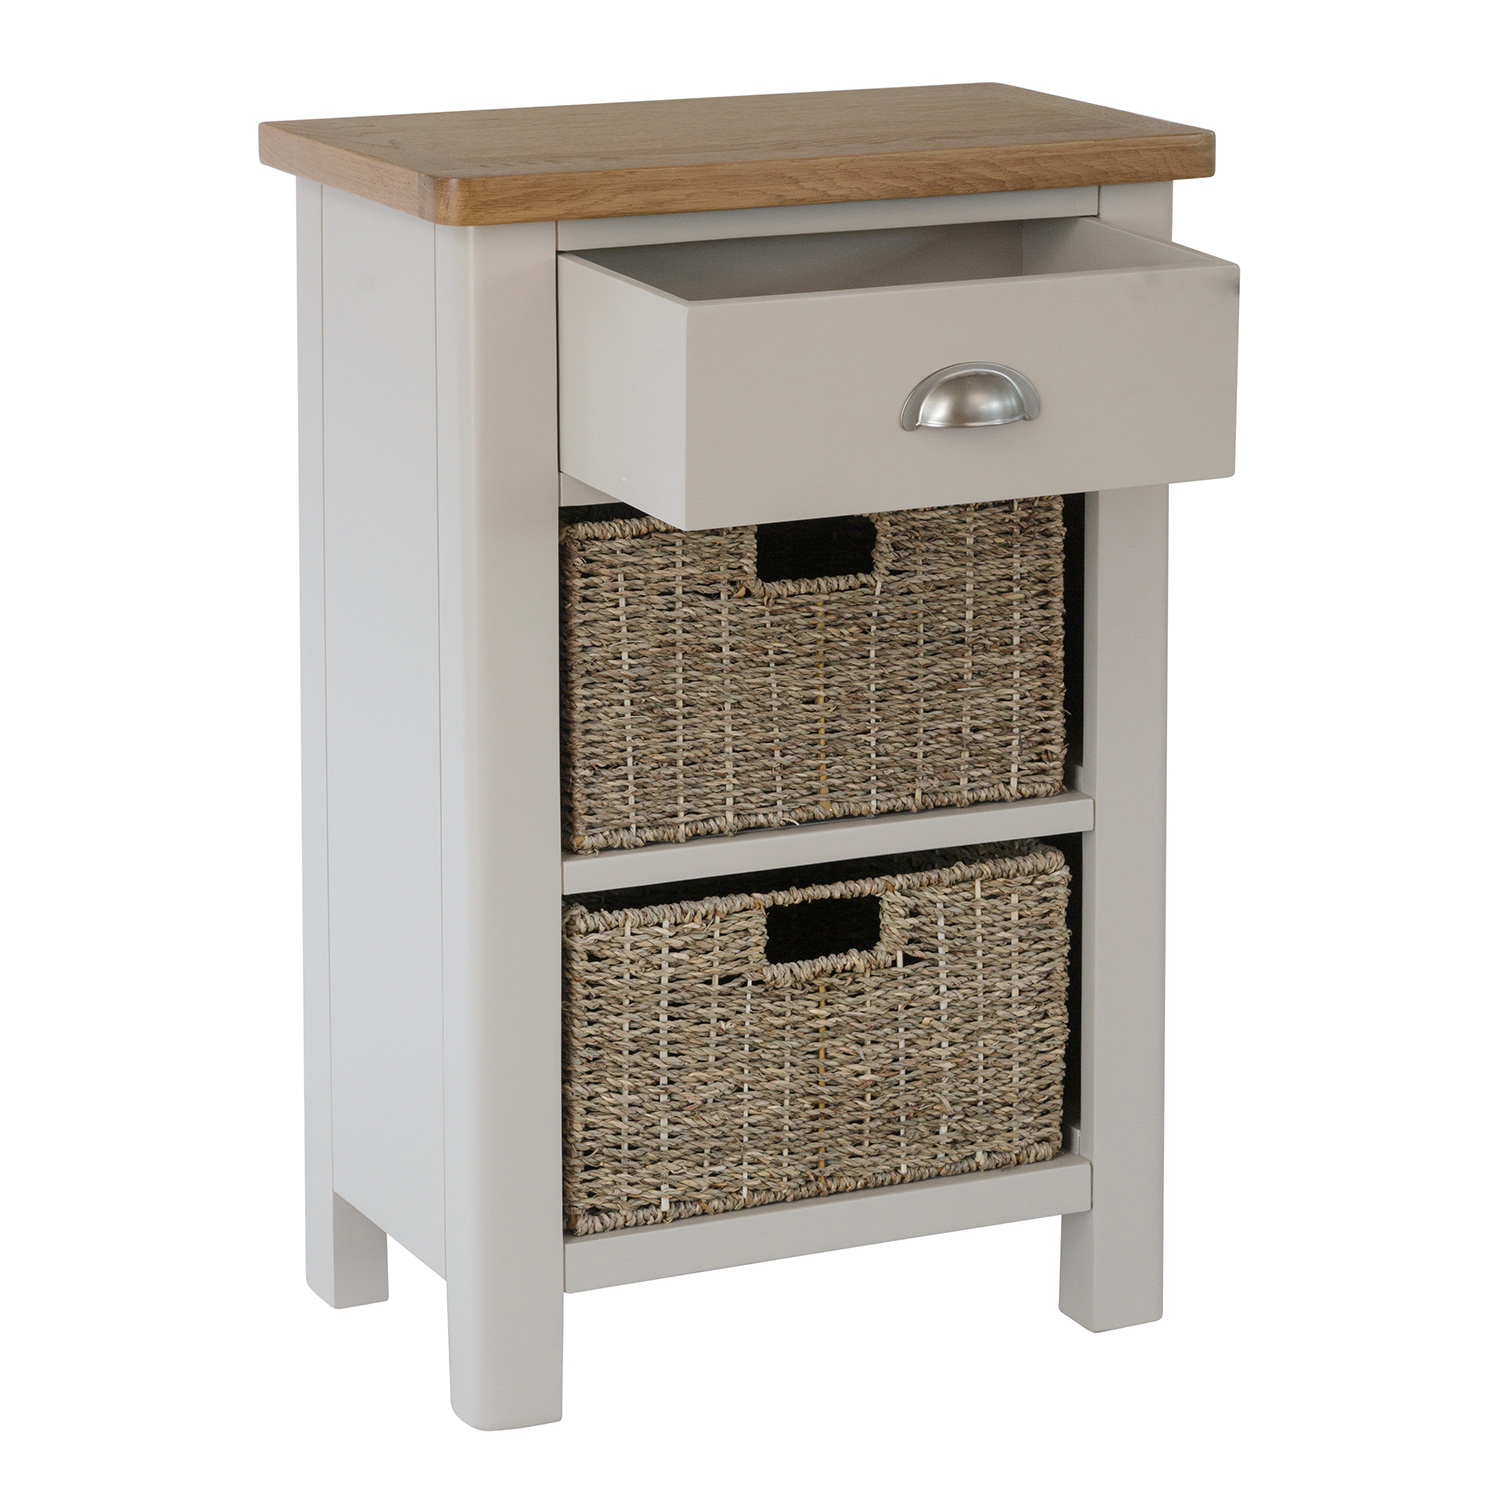 Chiltern Dove 1 Drawer 2 Basket Unit